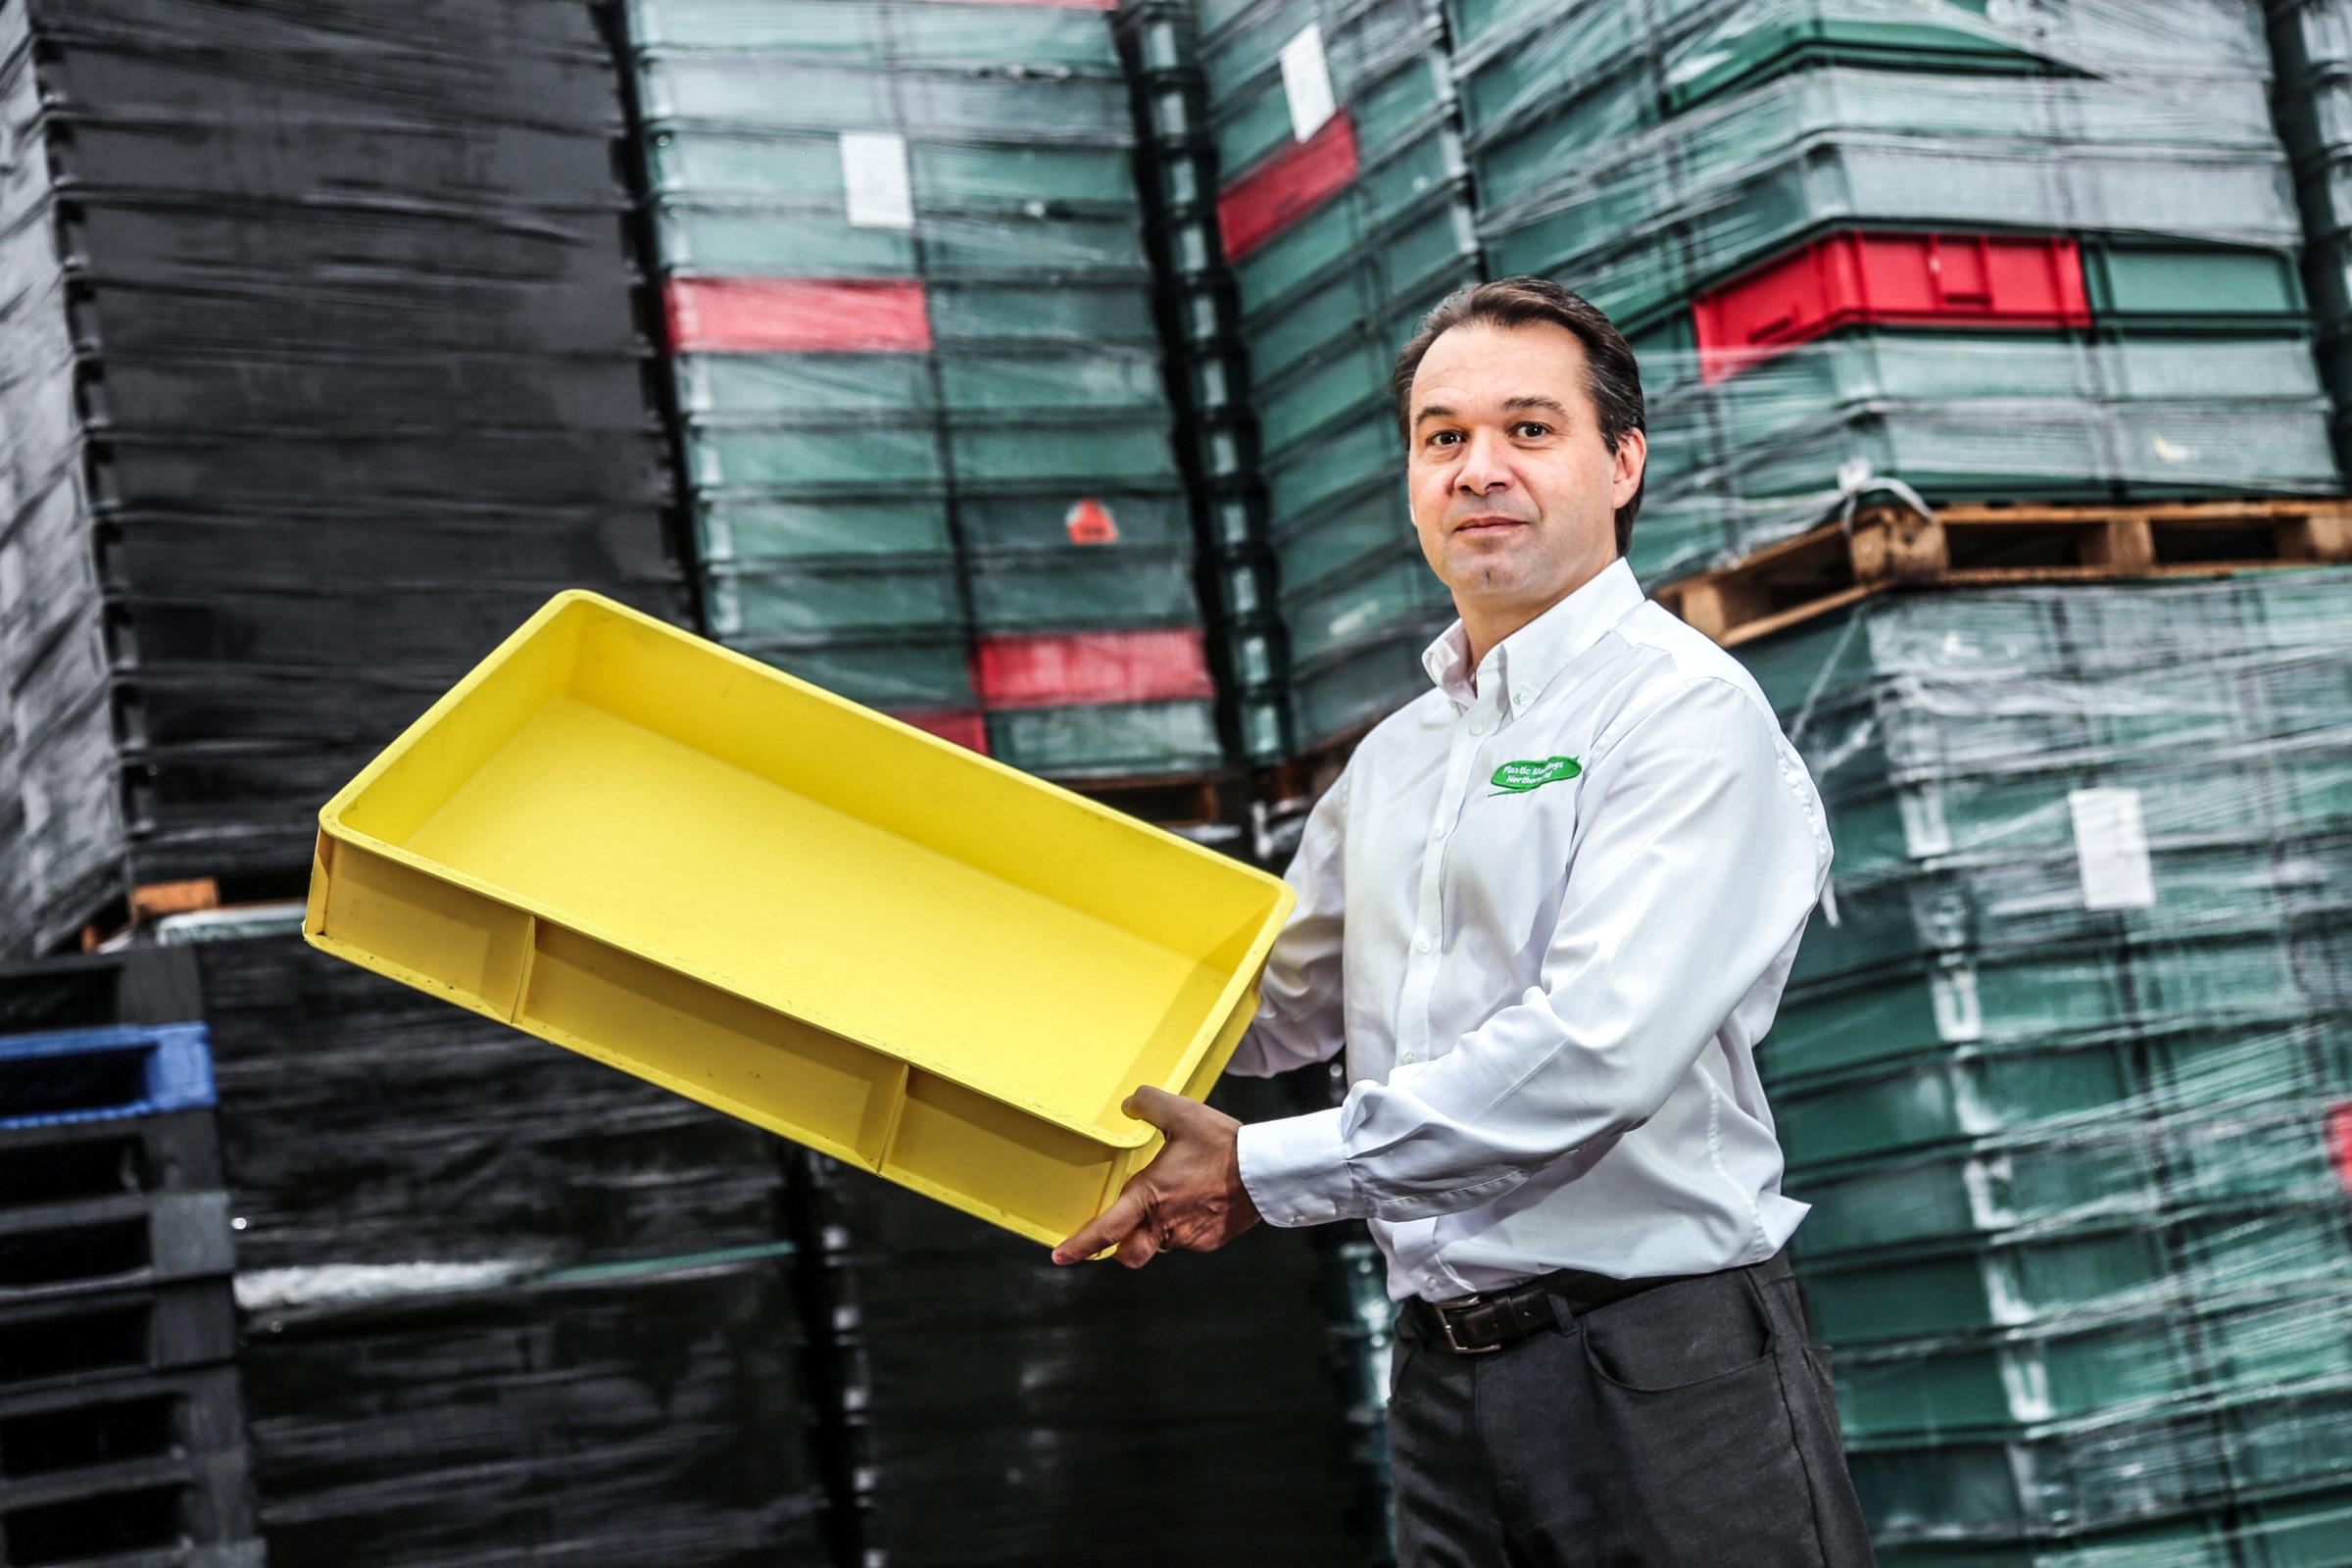 EXPANSION: Plastic Mouldings Northern sales director Freddy Bourdais says his firm now stocks more than 6,000 plastic pallets to serve a growing industry